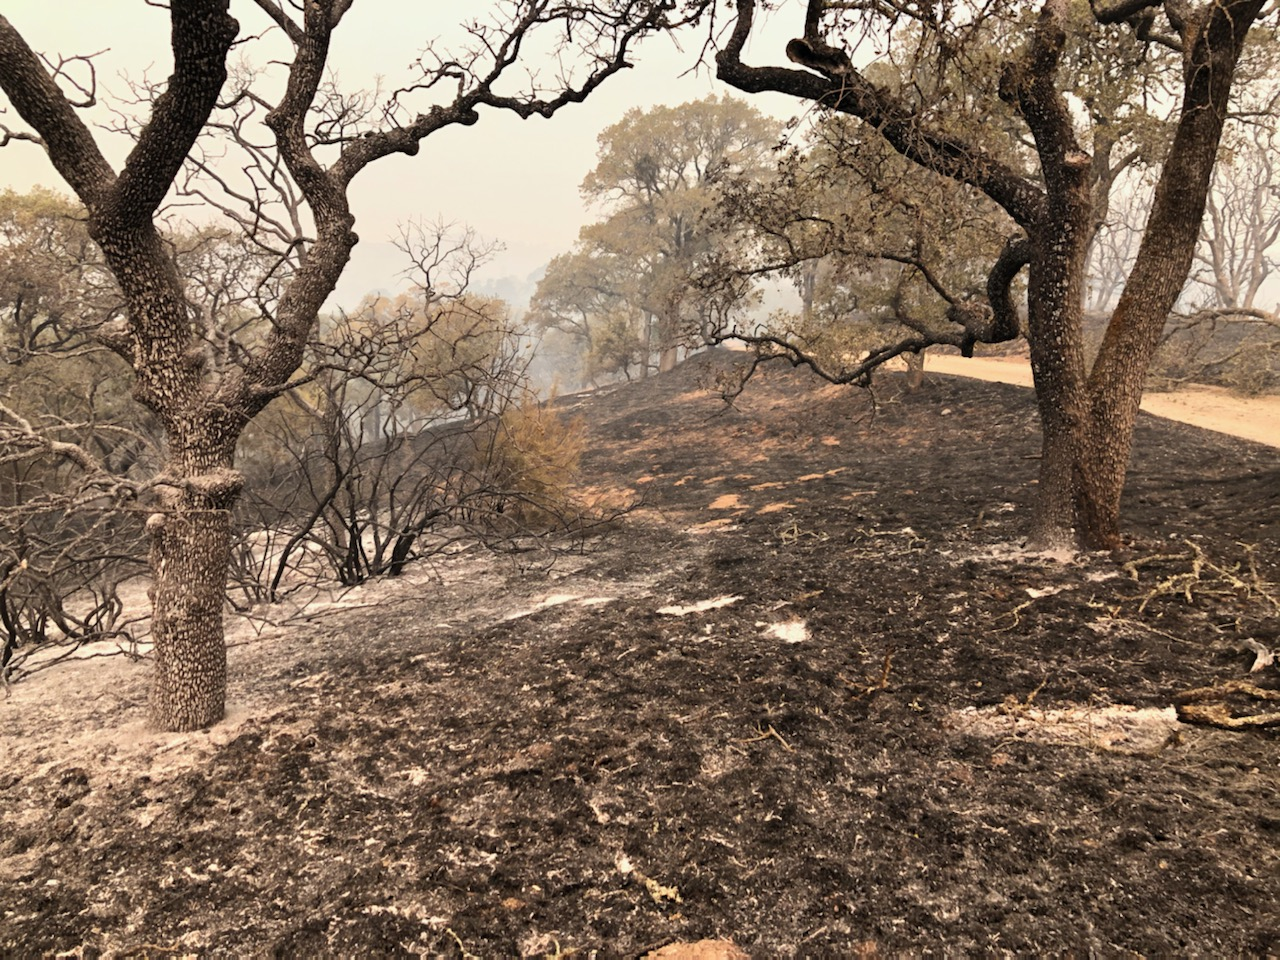 Part of Henry W. Coe State Park burned by the SCU Lightning Complex fires of 2020